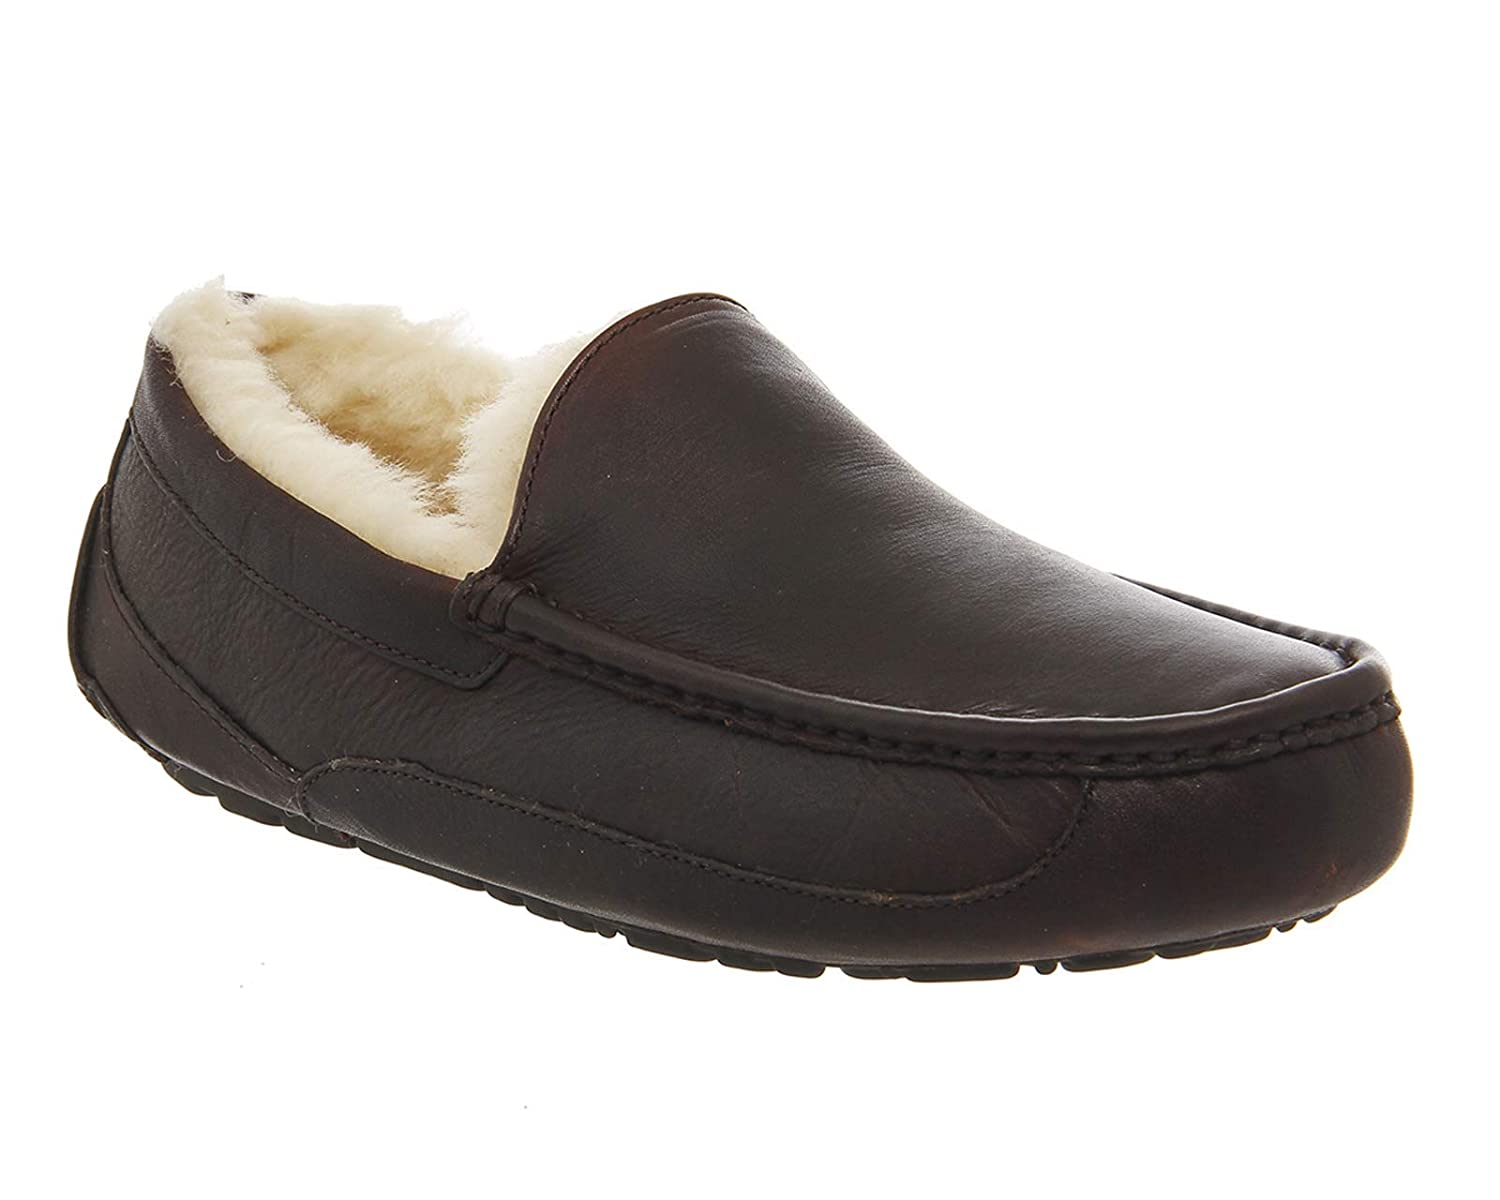 cdf1a5e7857 UGG Men's Ascot Slipper